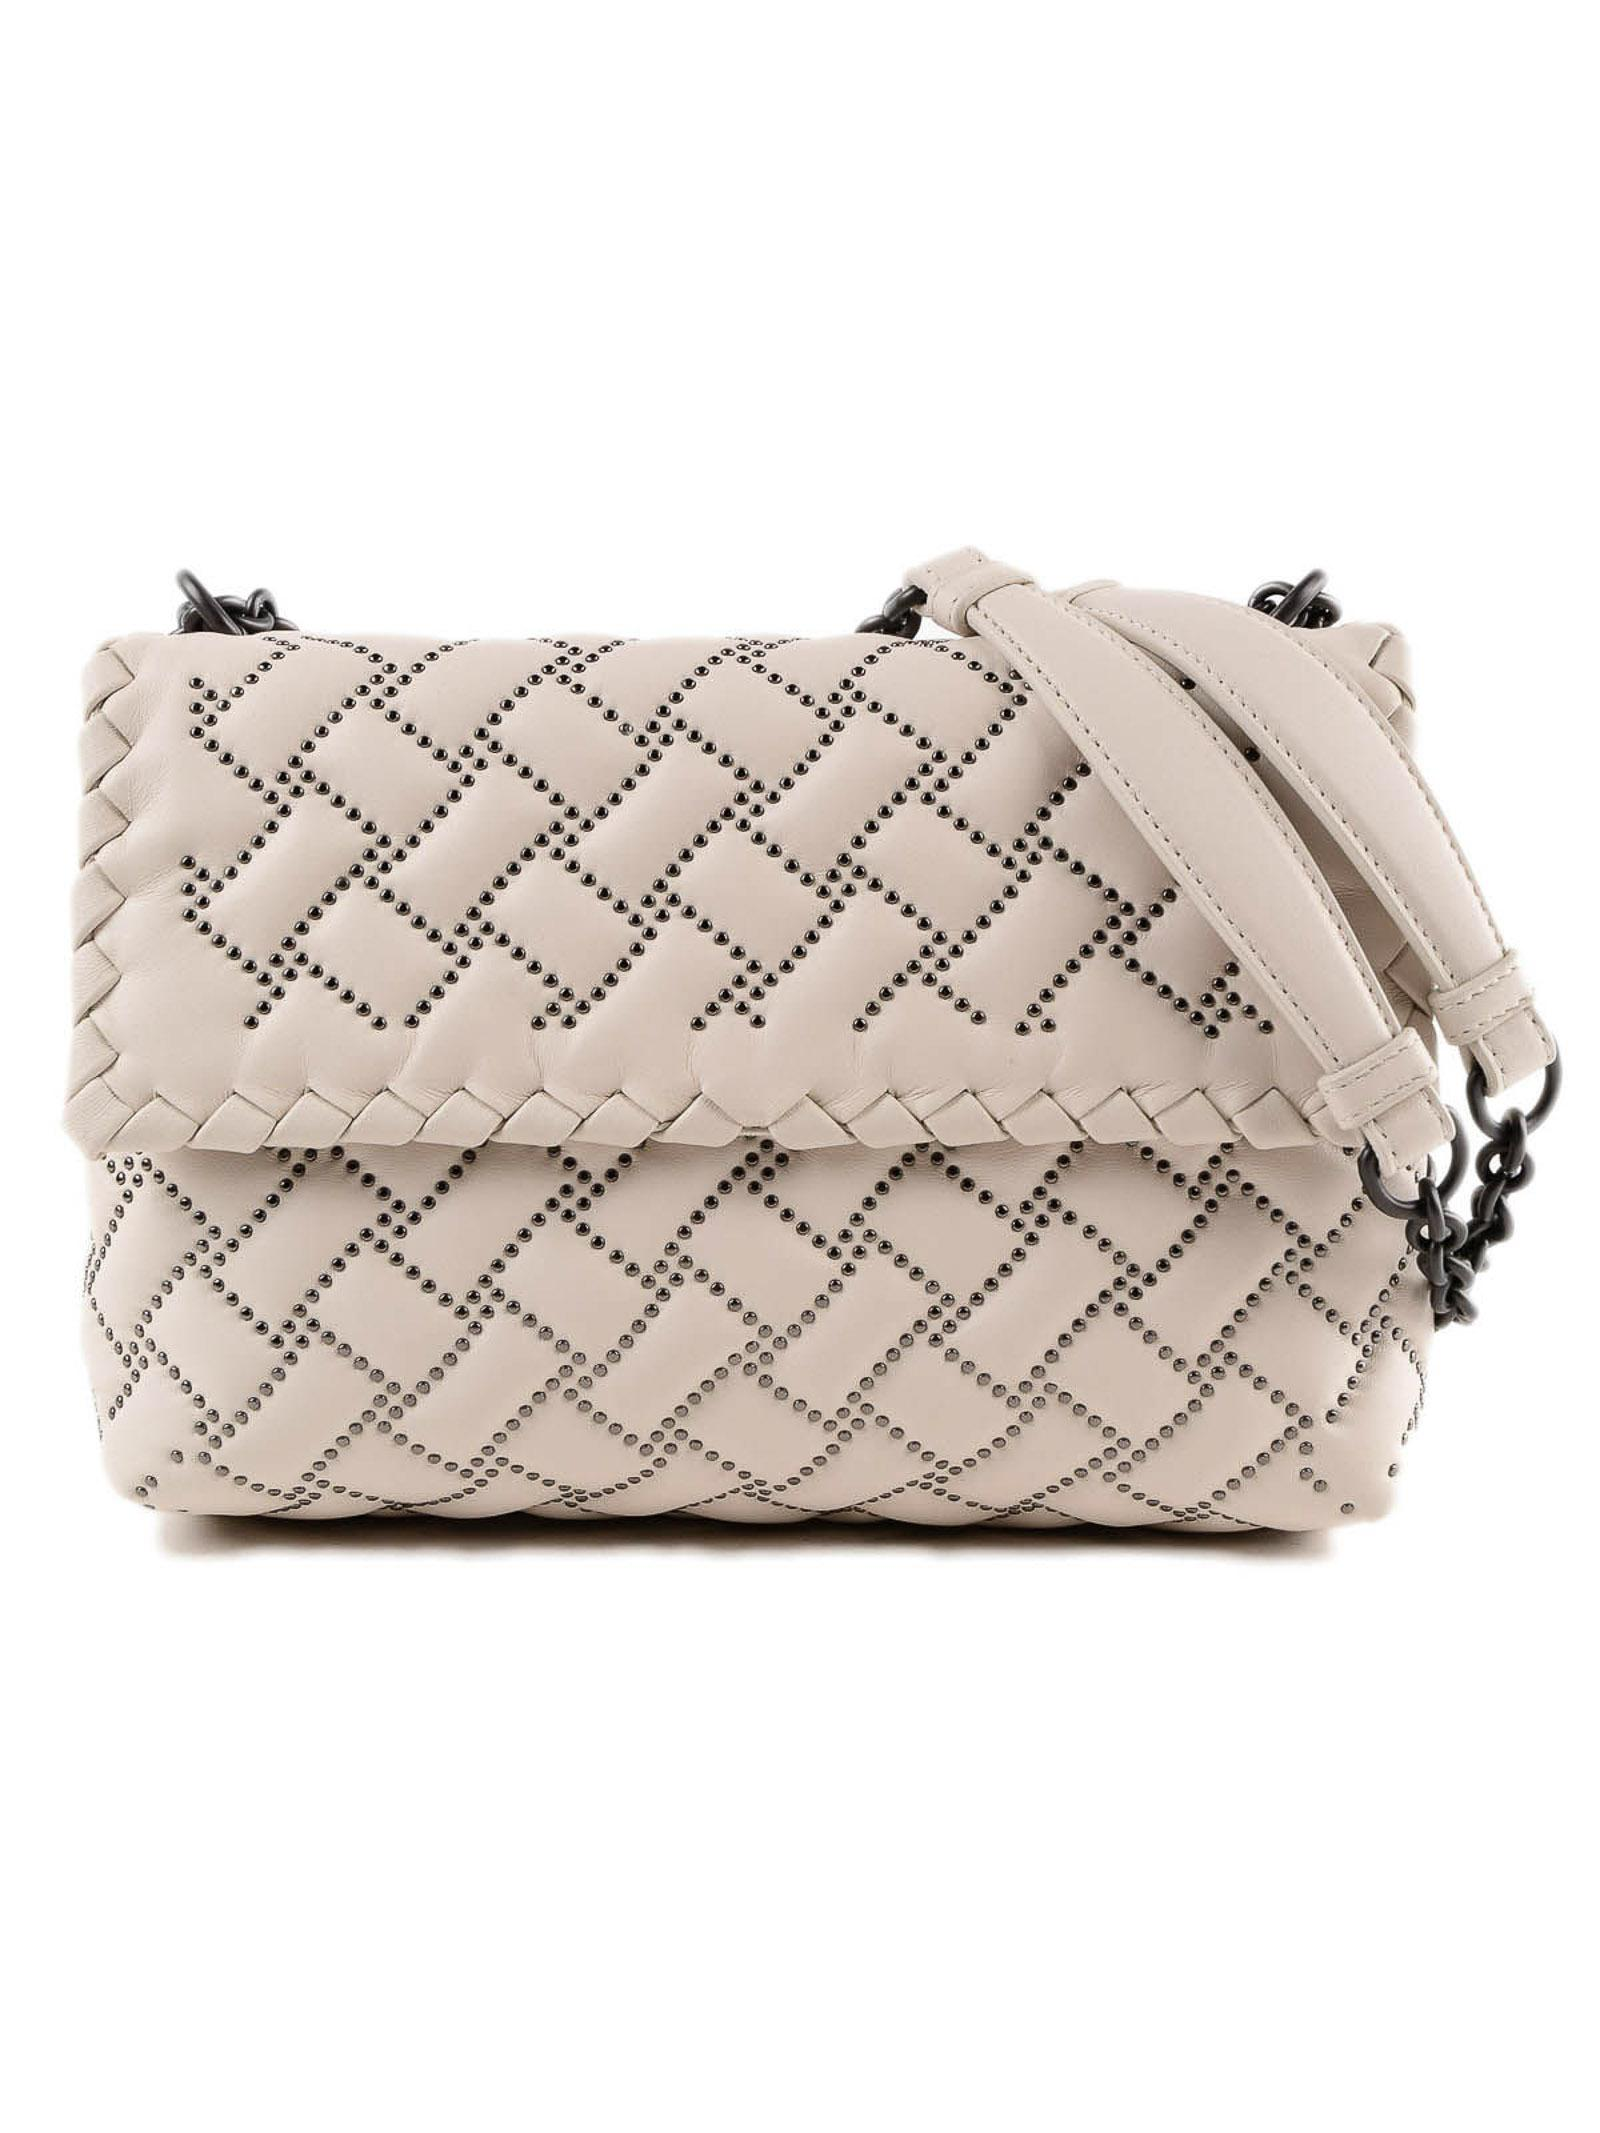 Lyst - Bottega Veneta Sm Olimpia Bag in Natural bce44e03fc